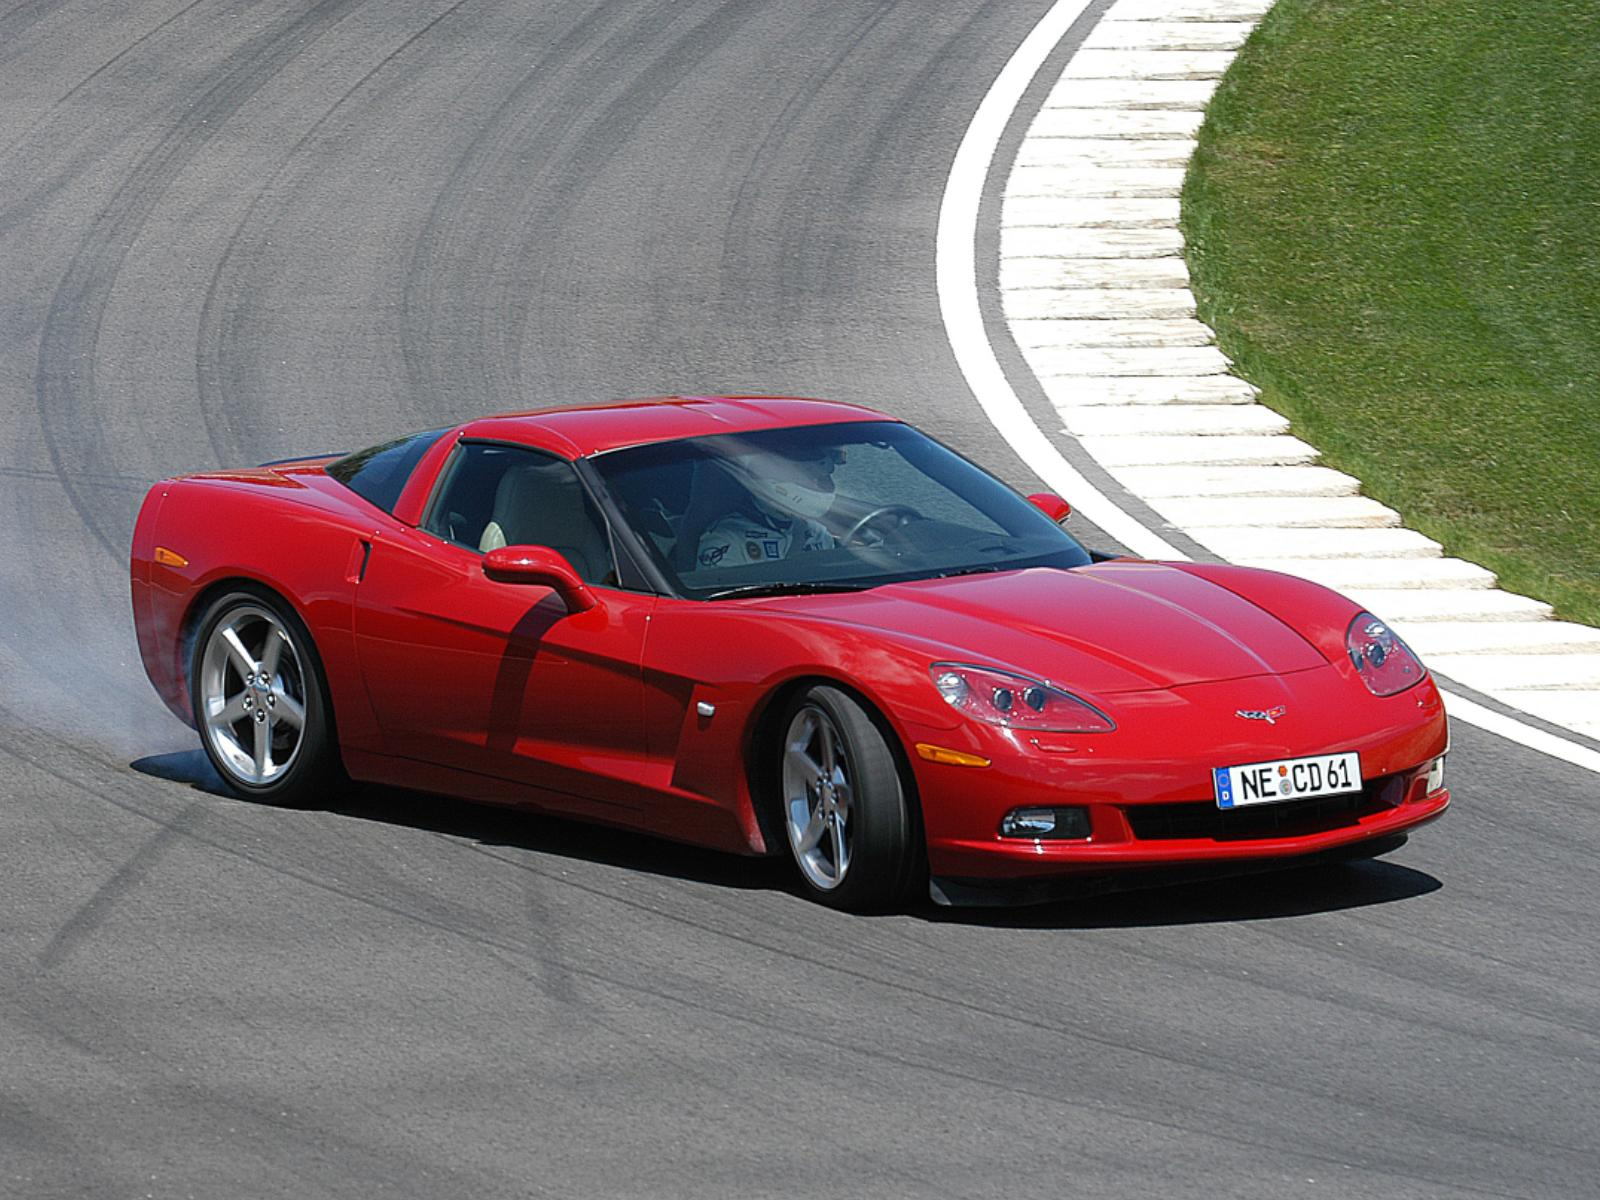 Chevrolet Corvette C6 photo 17665